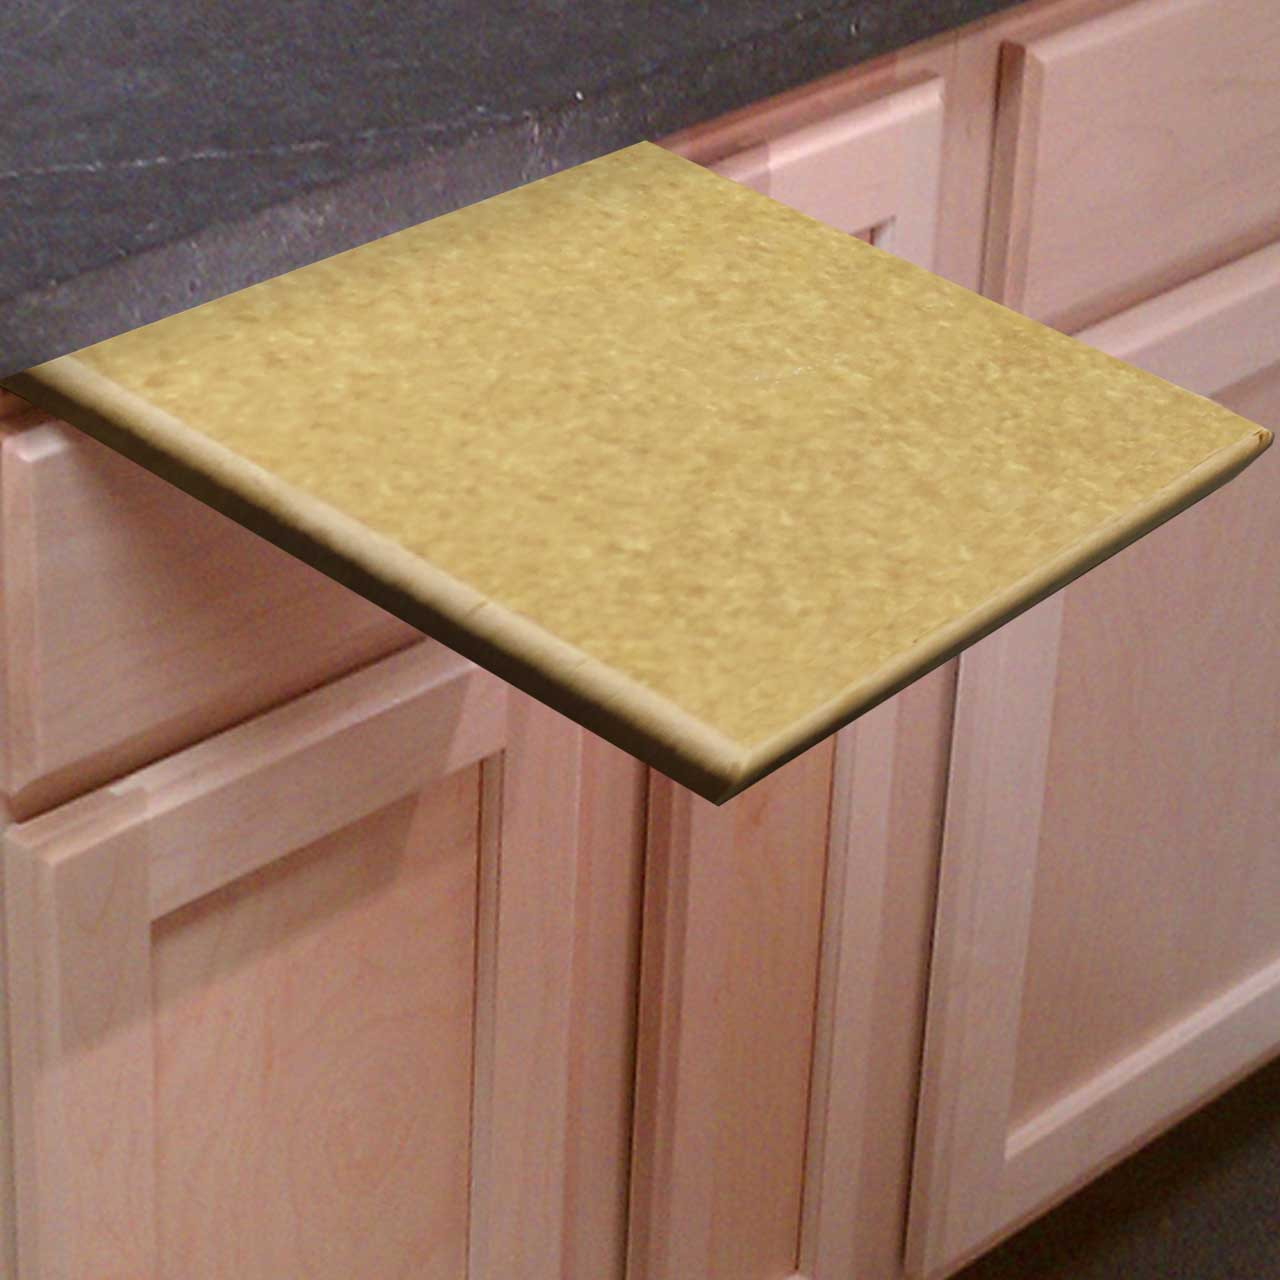 john boos kitchen islands aid mixers pull out richlite cutting board - 3/4 inch thick ...